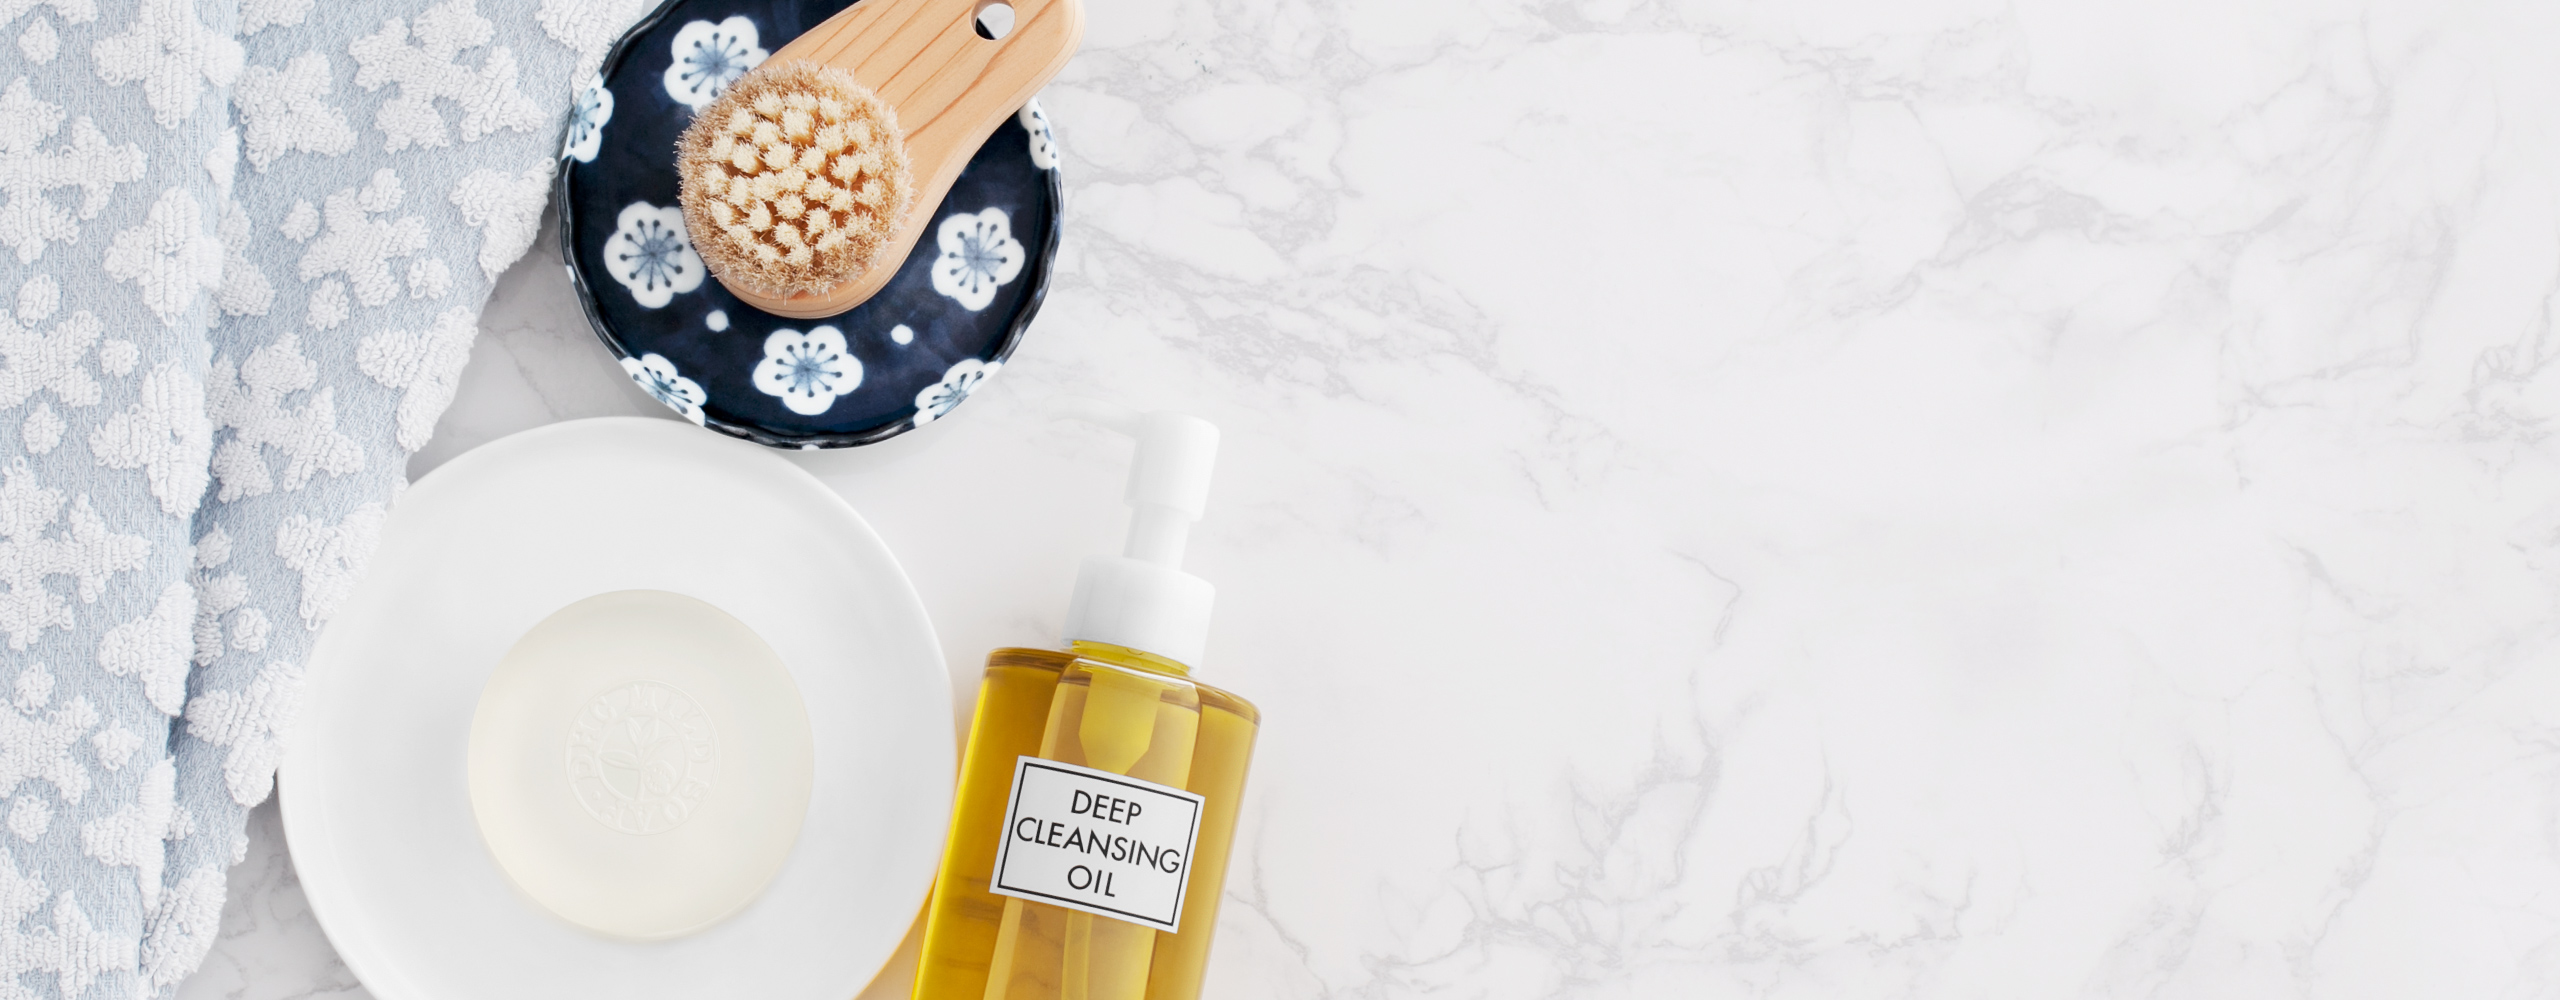 DHC Deep Cleansing Oil for a Double Cleansing regimen